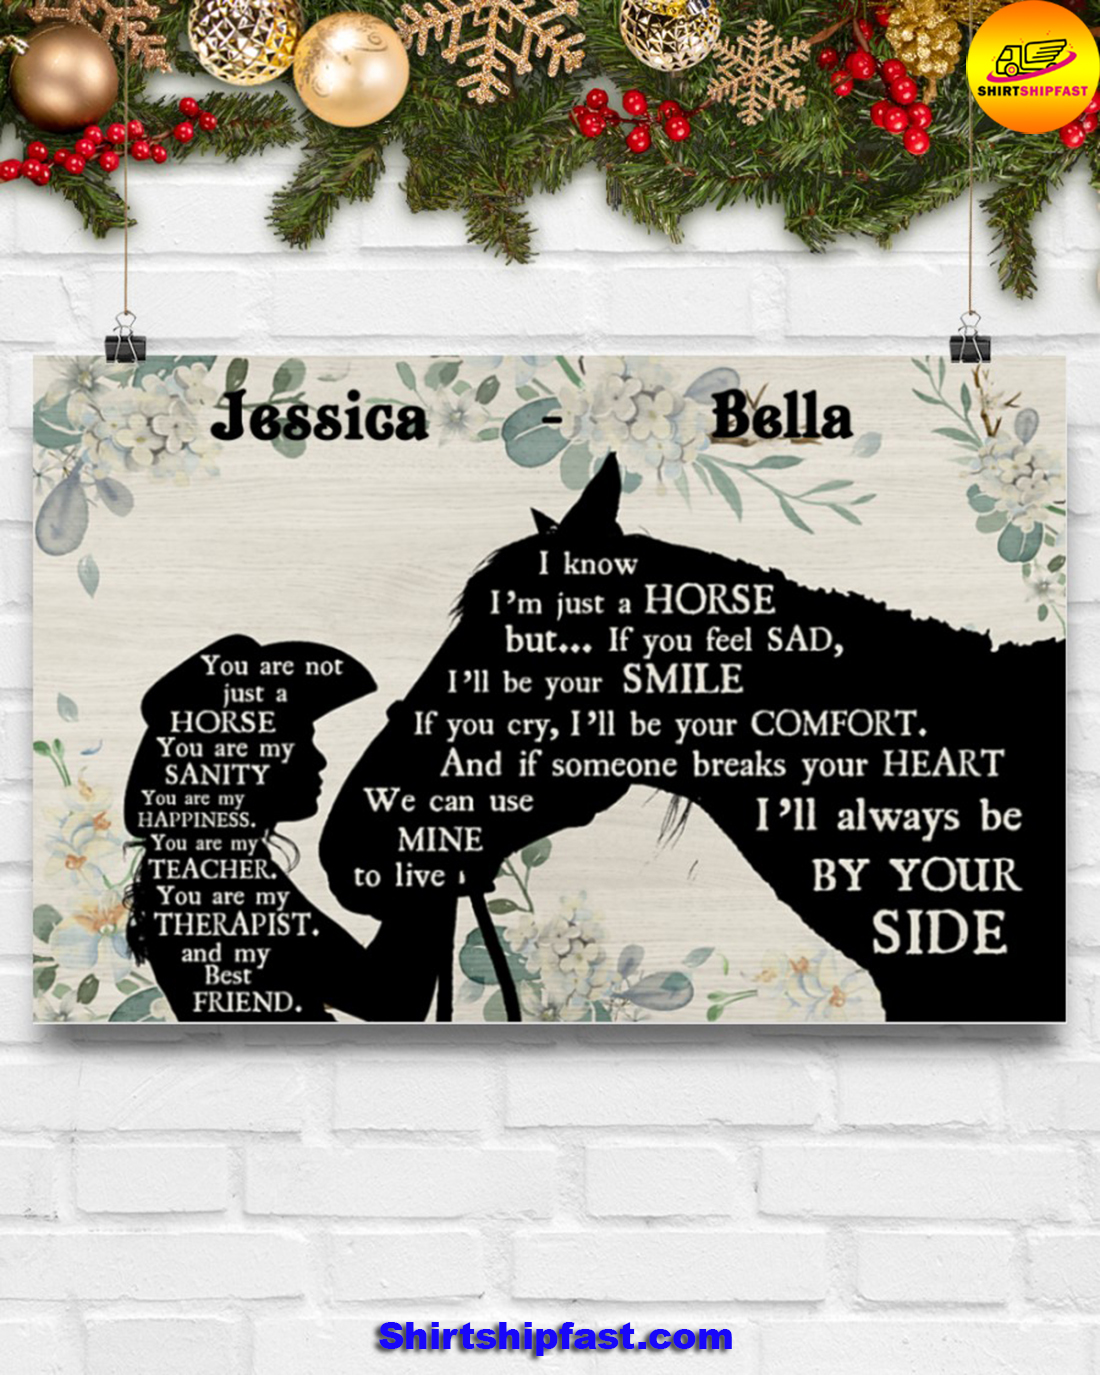 You are not just a horse personalized horse lover poster - Picture 3